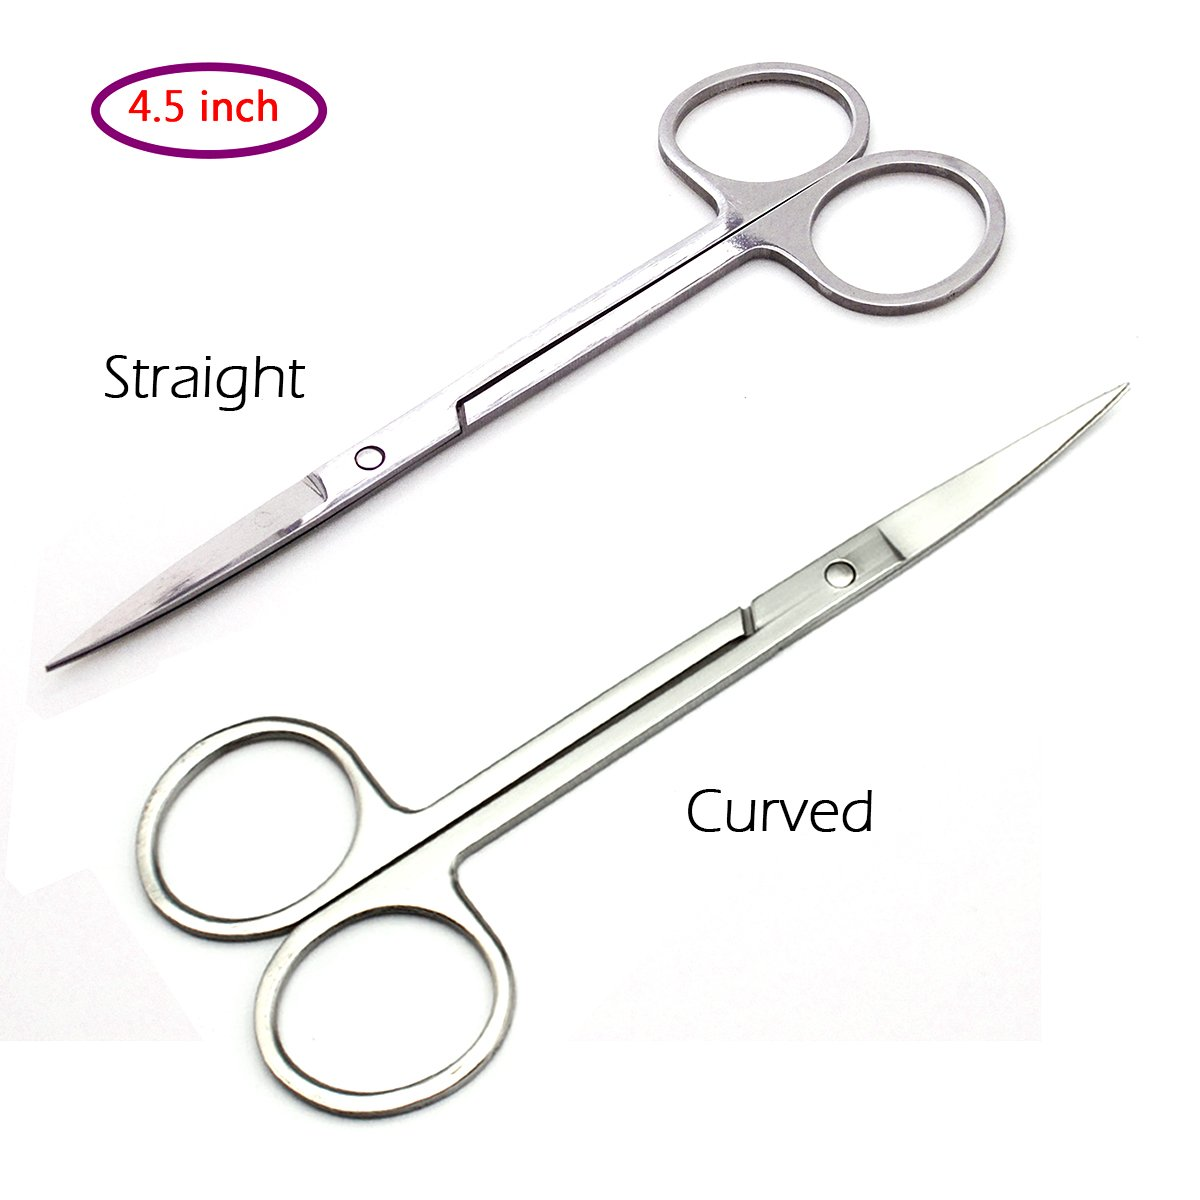 4.5 Inch Long Eyebrow Scissors Stainless Steel Beard Trimmer Elongated Straight Scissors for Grooming Sewing (Straight) Focstar